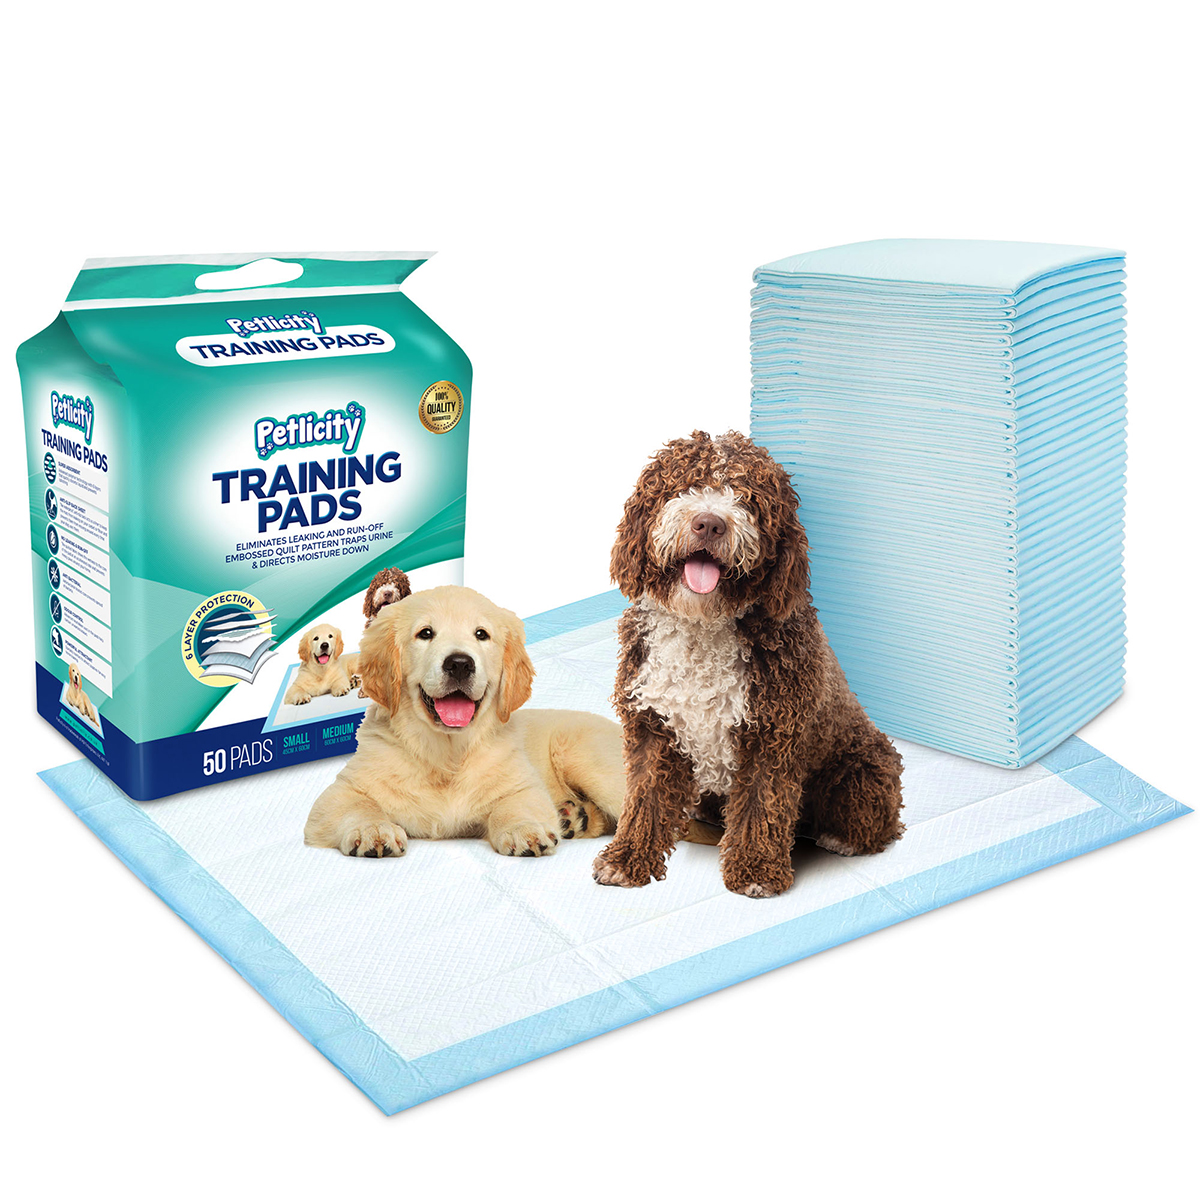 Pack Of Puppy Dog Toilet Training Pads Highly Absorbent Mats To